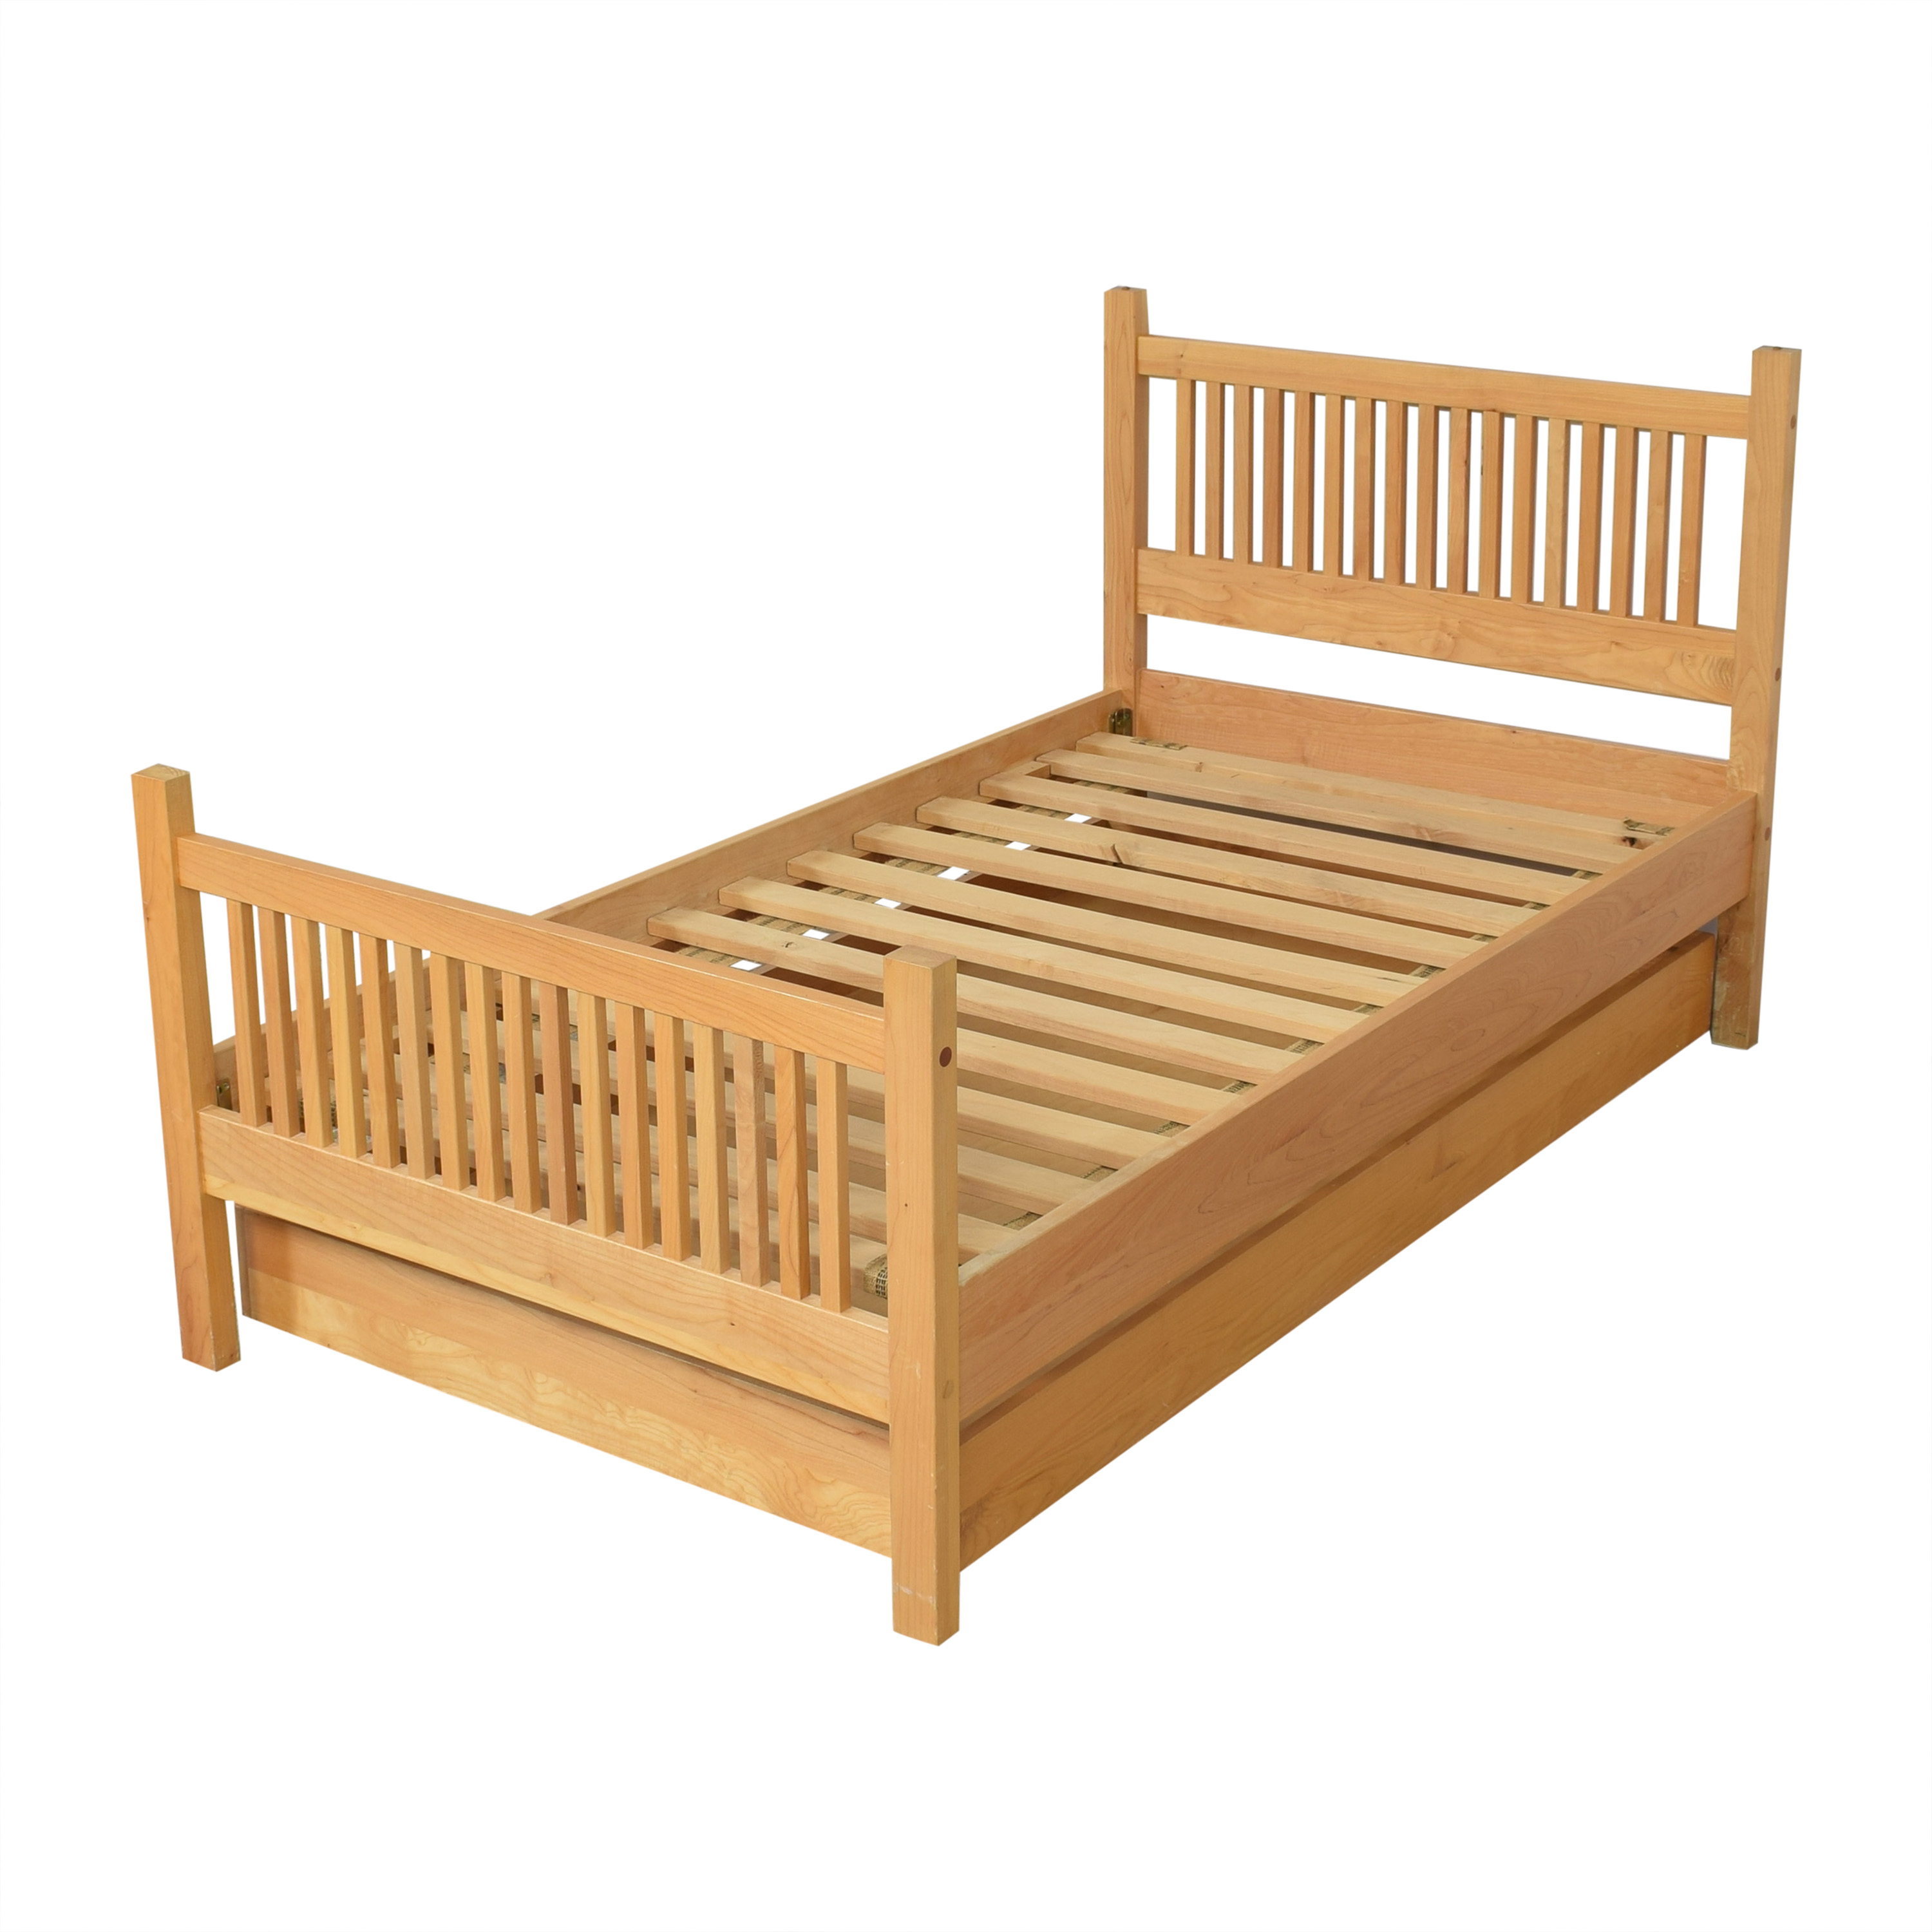 Room & Board Room & Board Riley Twin Bed with Trundle price